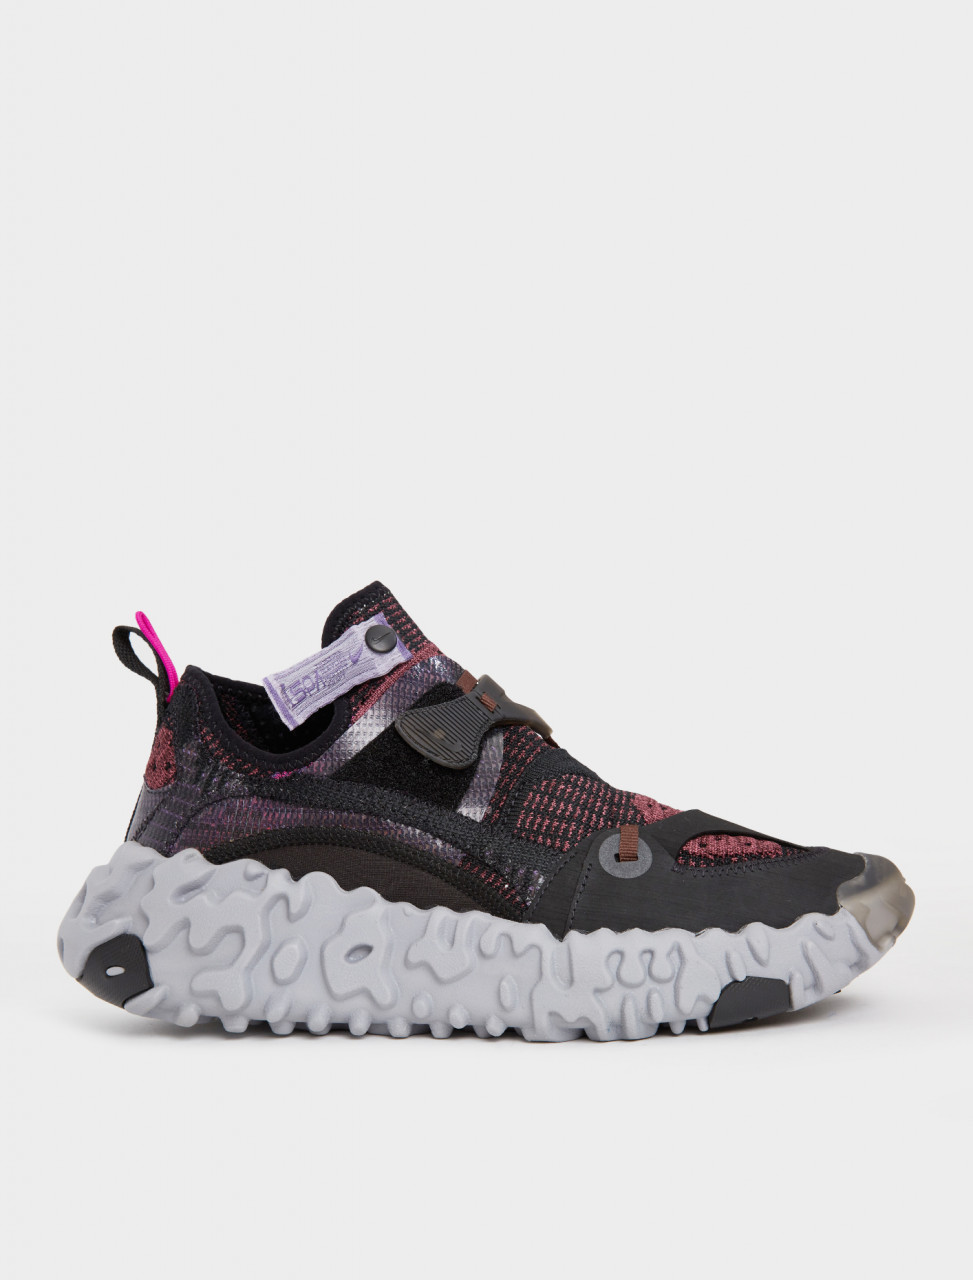 149-CD9664-002 NIKE ISPA OVERREACT Flyknit Black Diffused Blue Shadowberry Earth